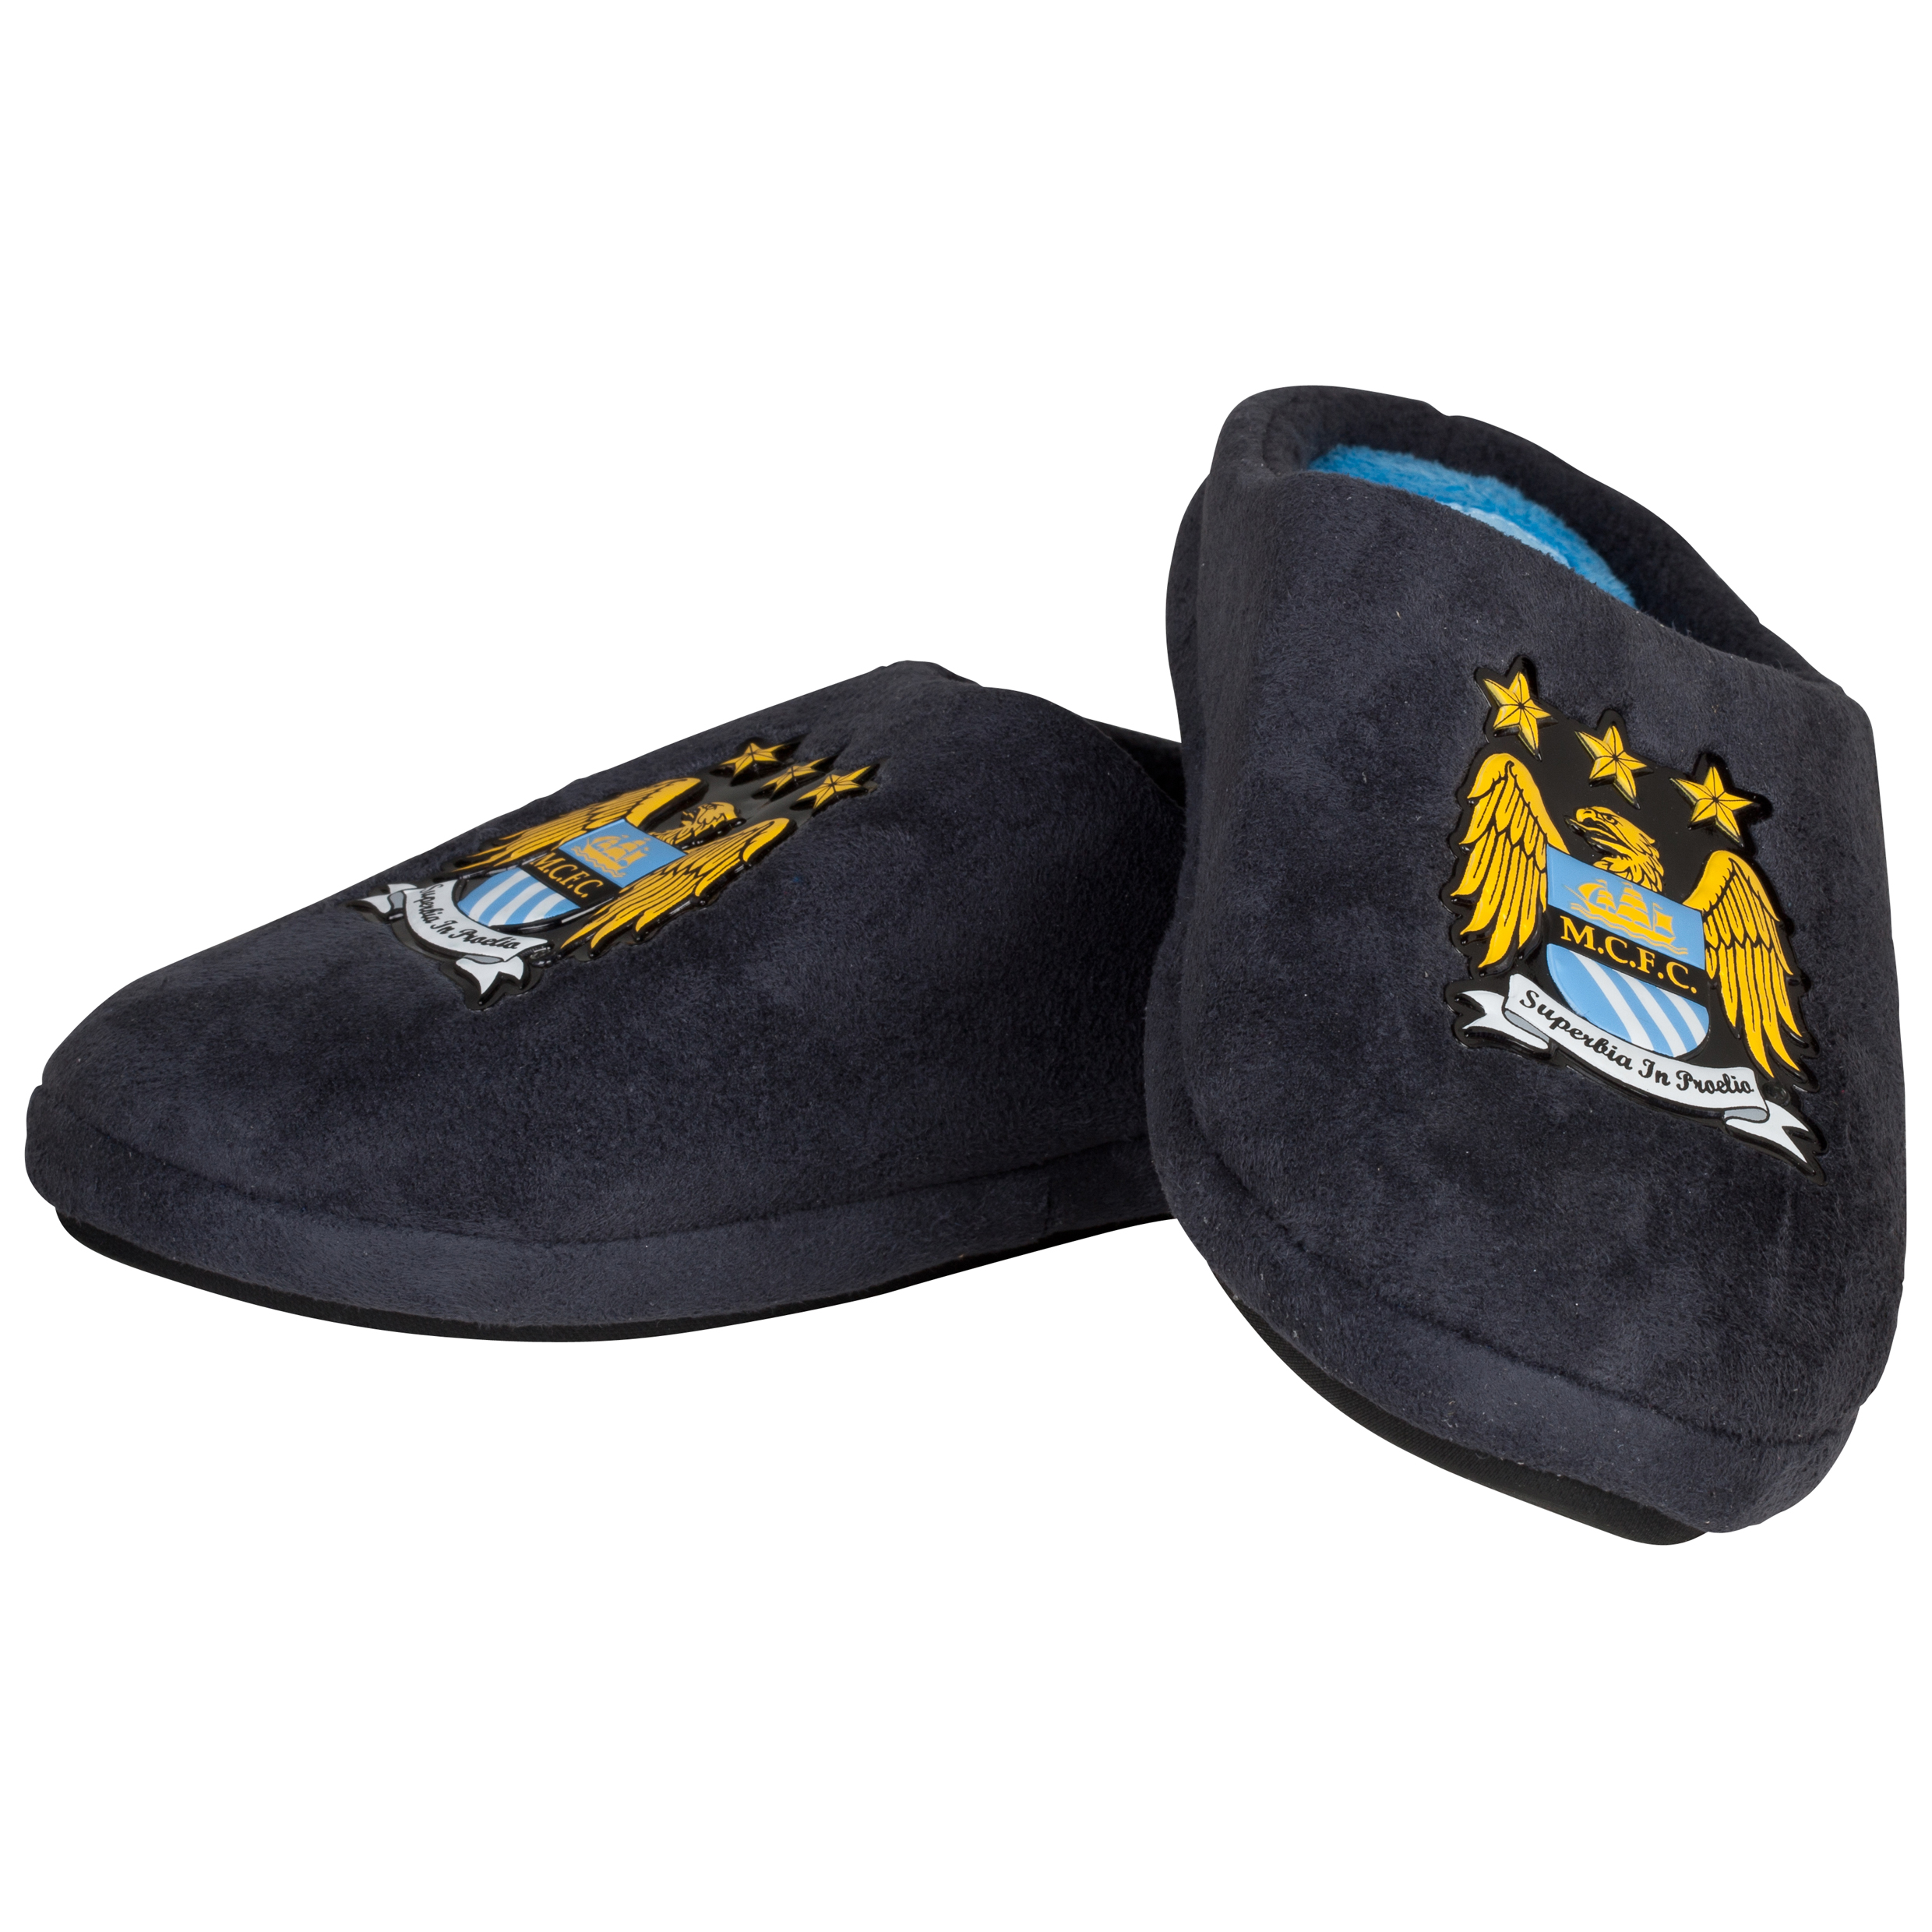 Manchester City Marco Mule Slipper - Charcoal - Older Boys